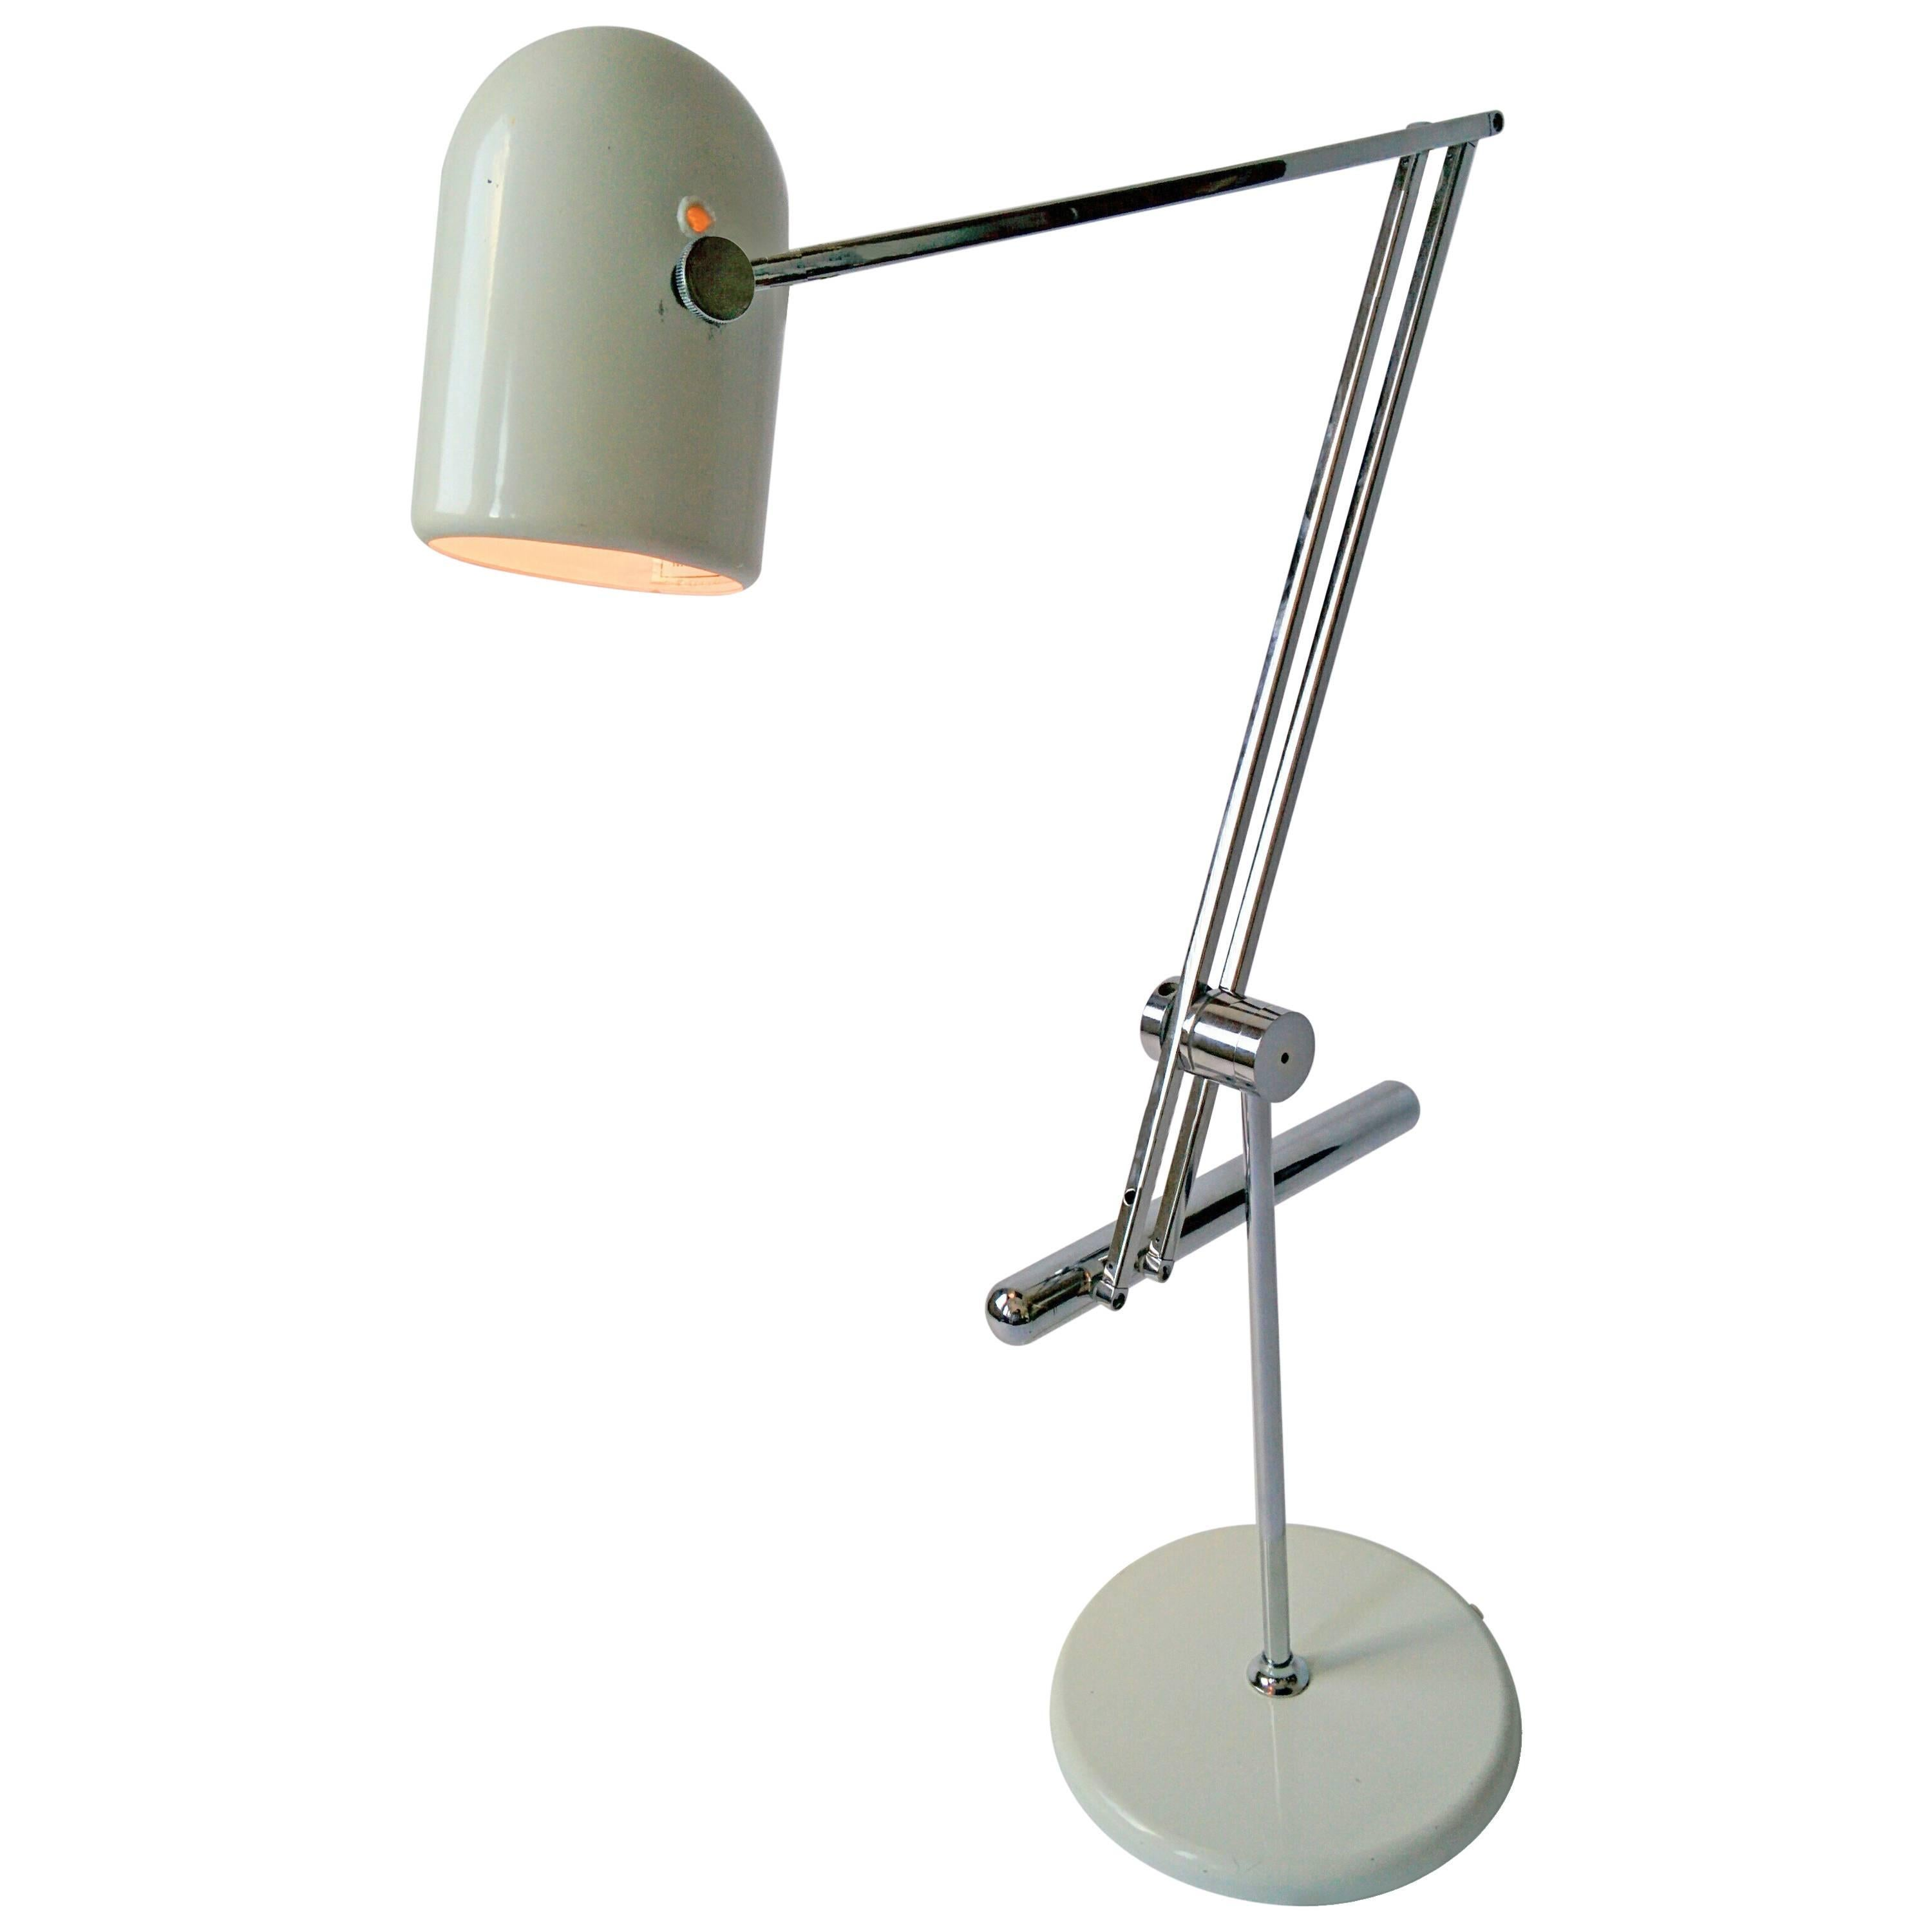 Reggiani Articulated Counterweight Table Lamp, 1960s, Italy